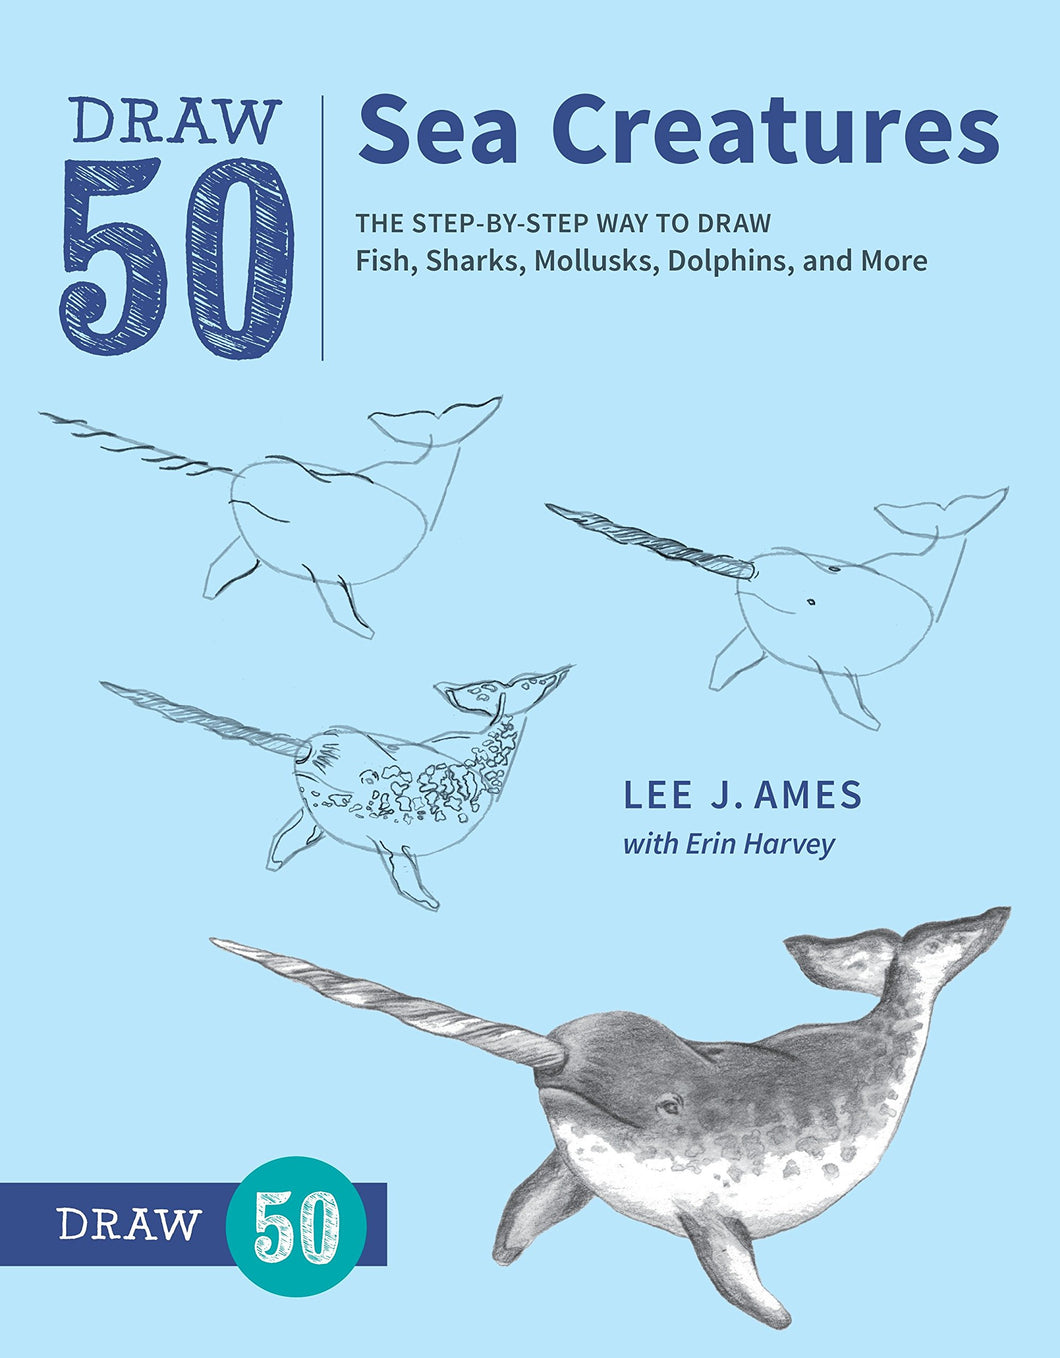 draw 50 sea creatures book